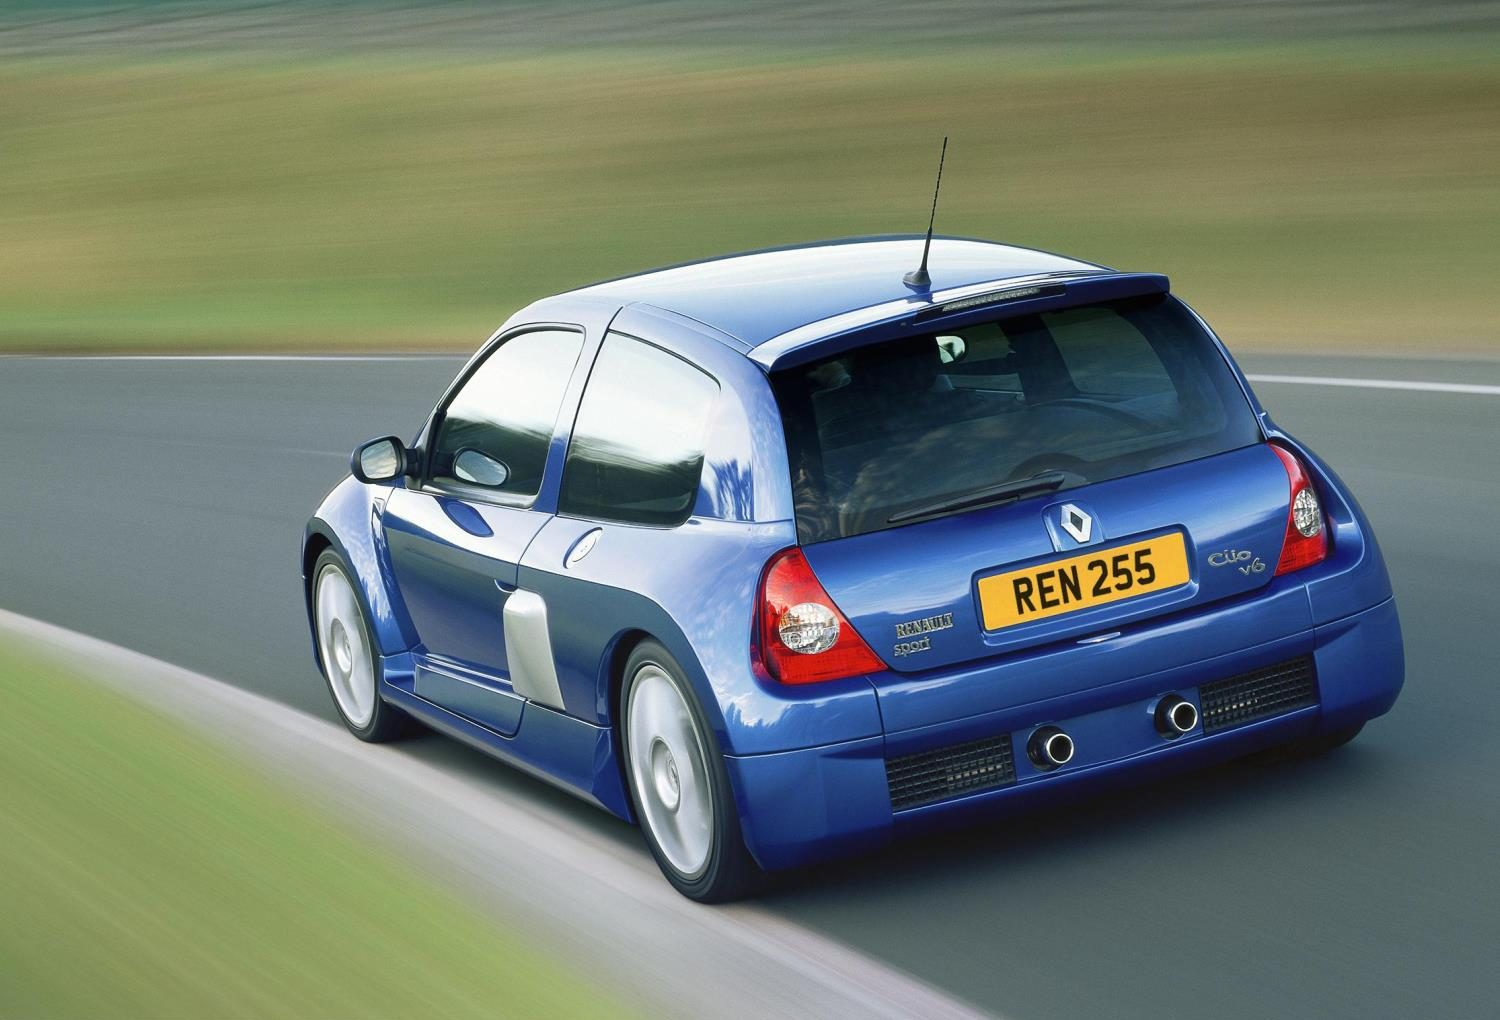 Clio V6 The Supercar Of Hot Hatches Renault Clio Renaultsport V6